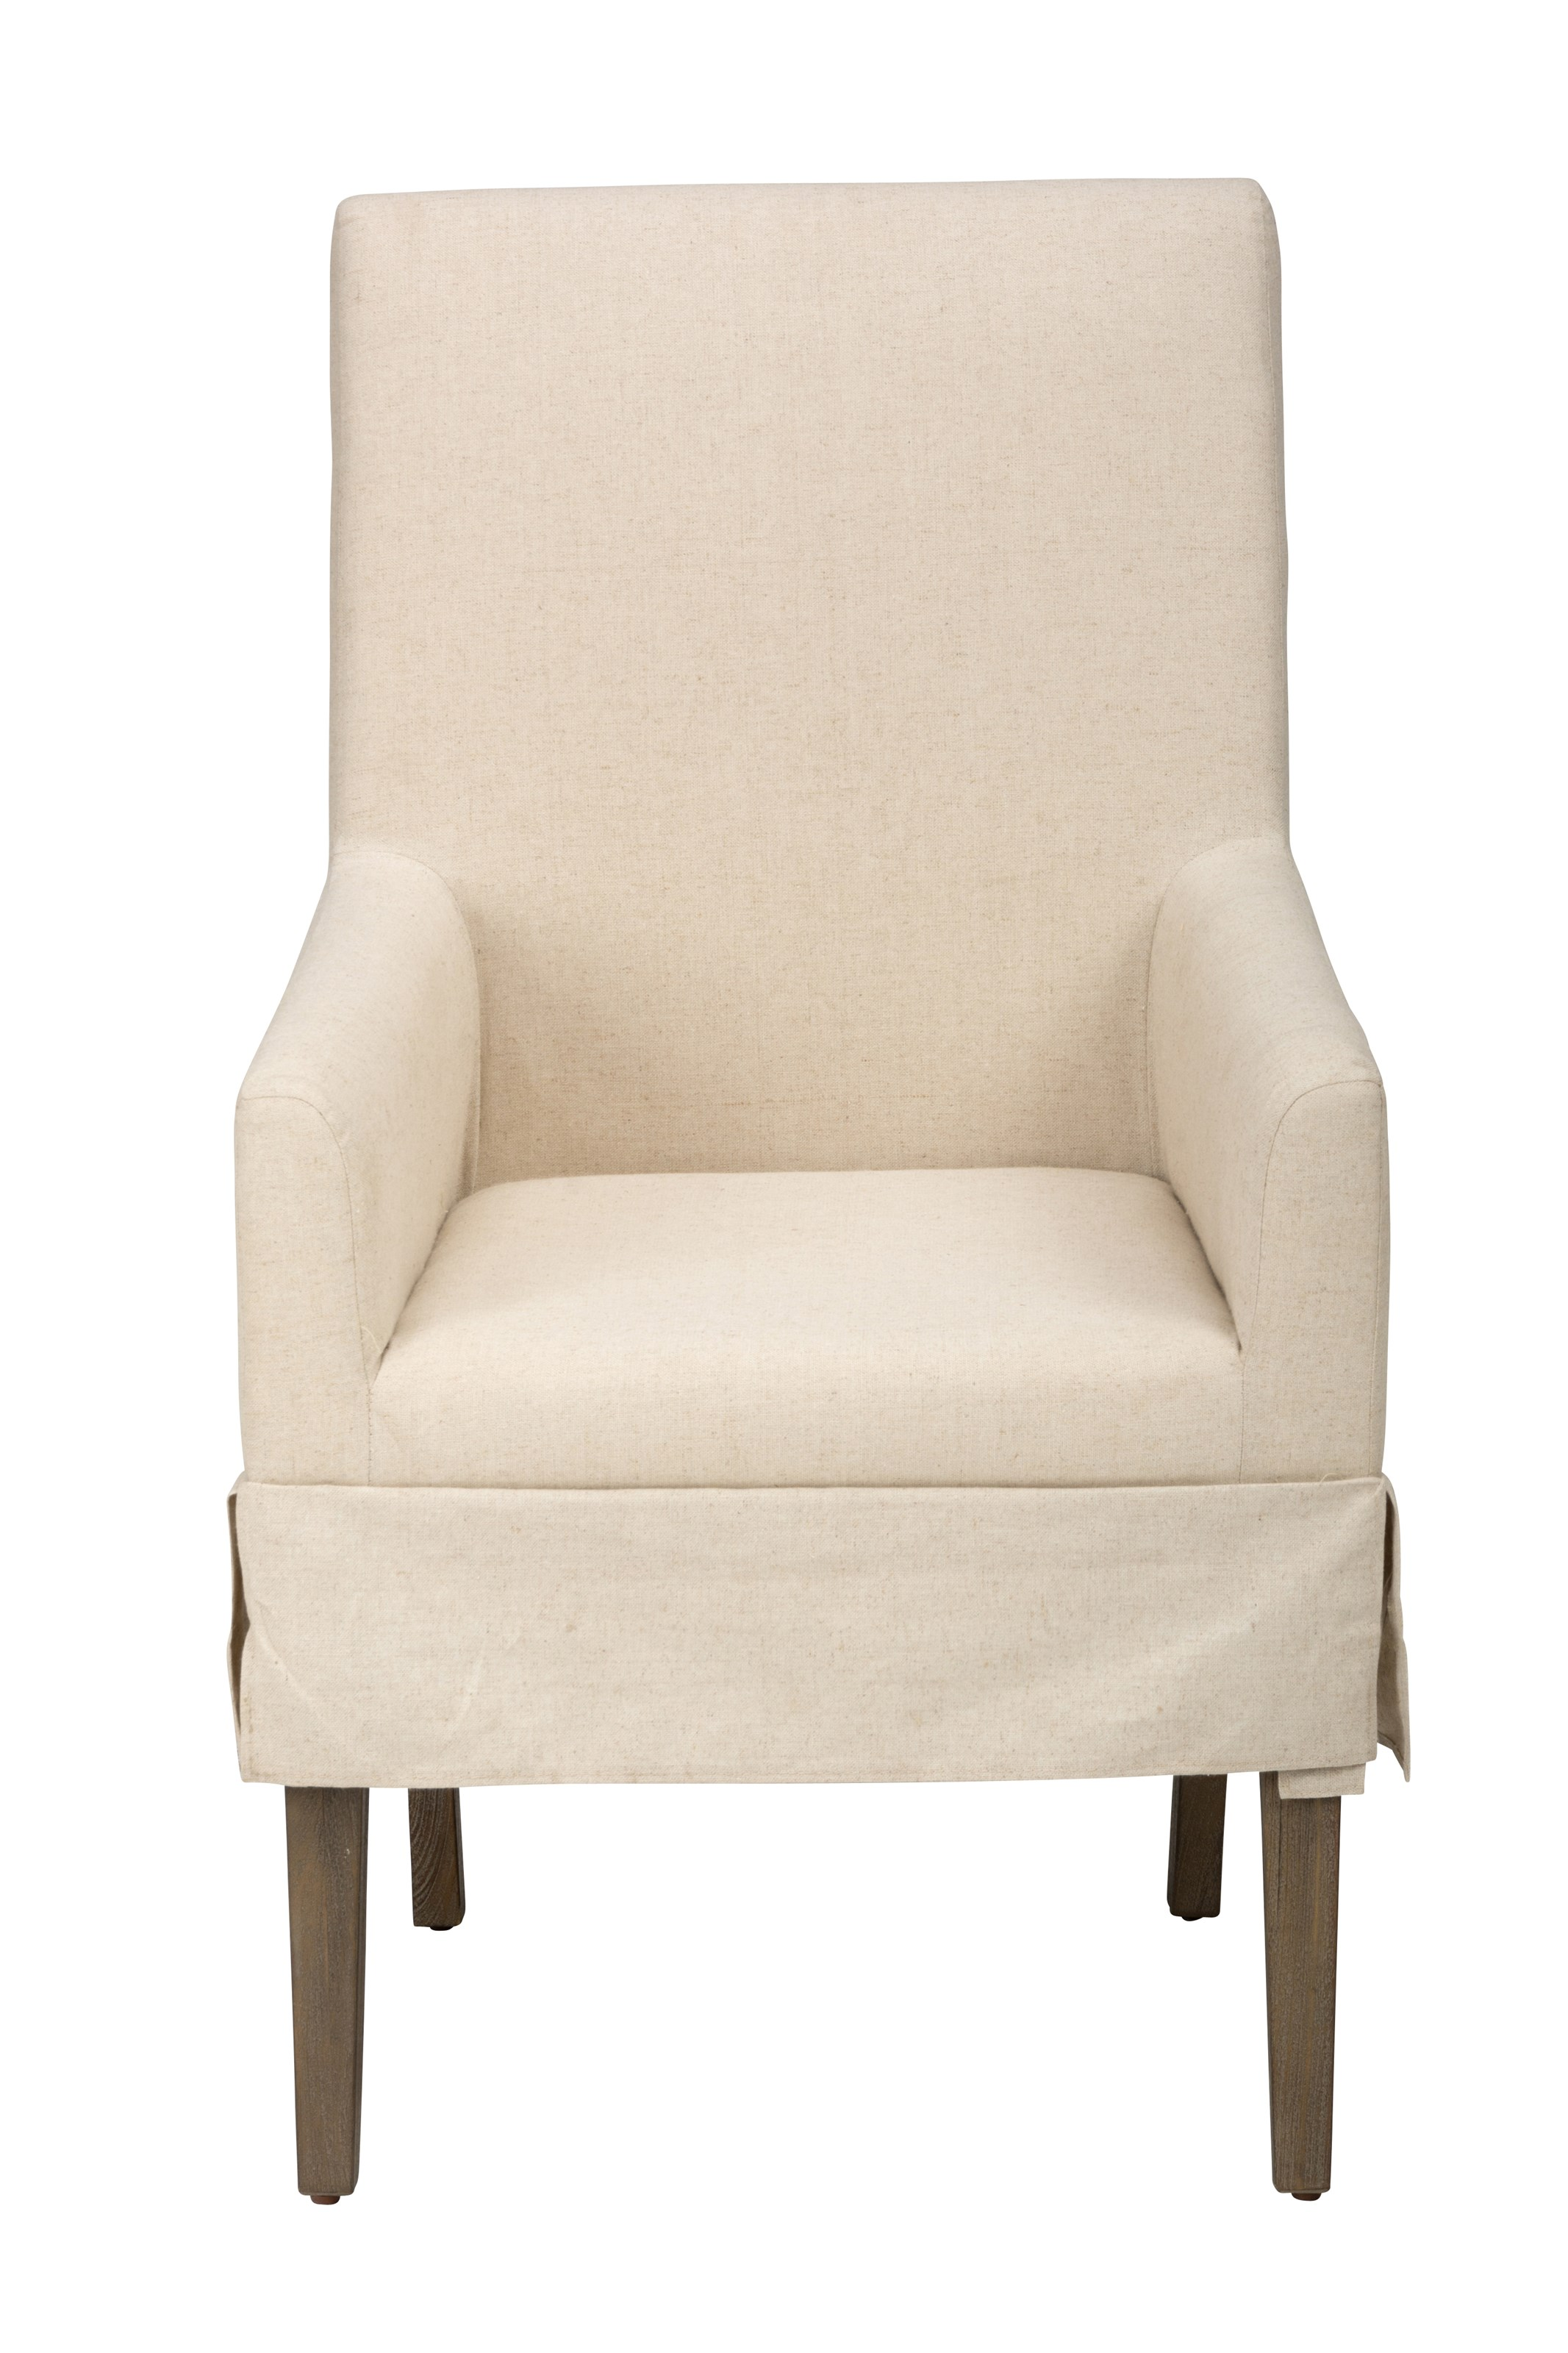 Hampton Road Slipcovered Dining Chair with Arms by Jofran at Stoney Creek Furniture